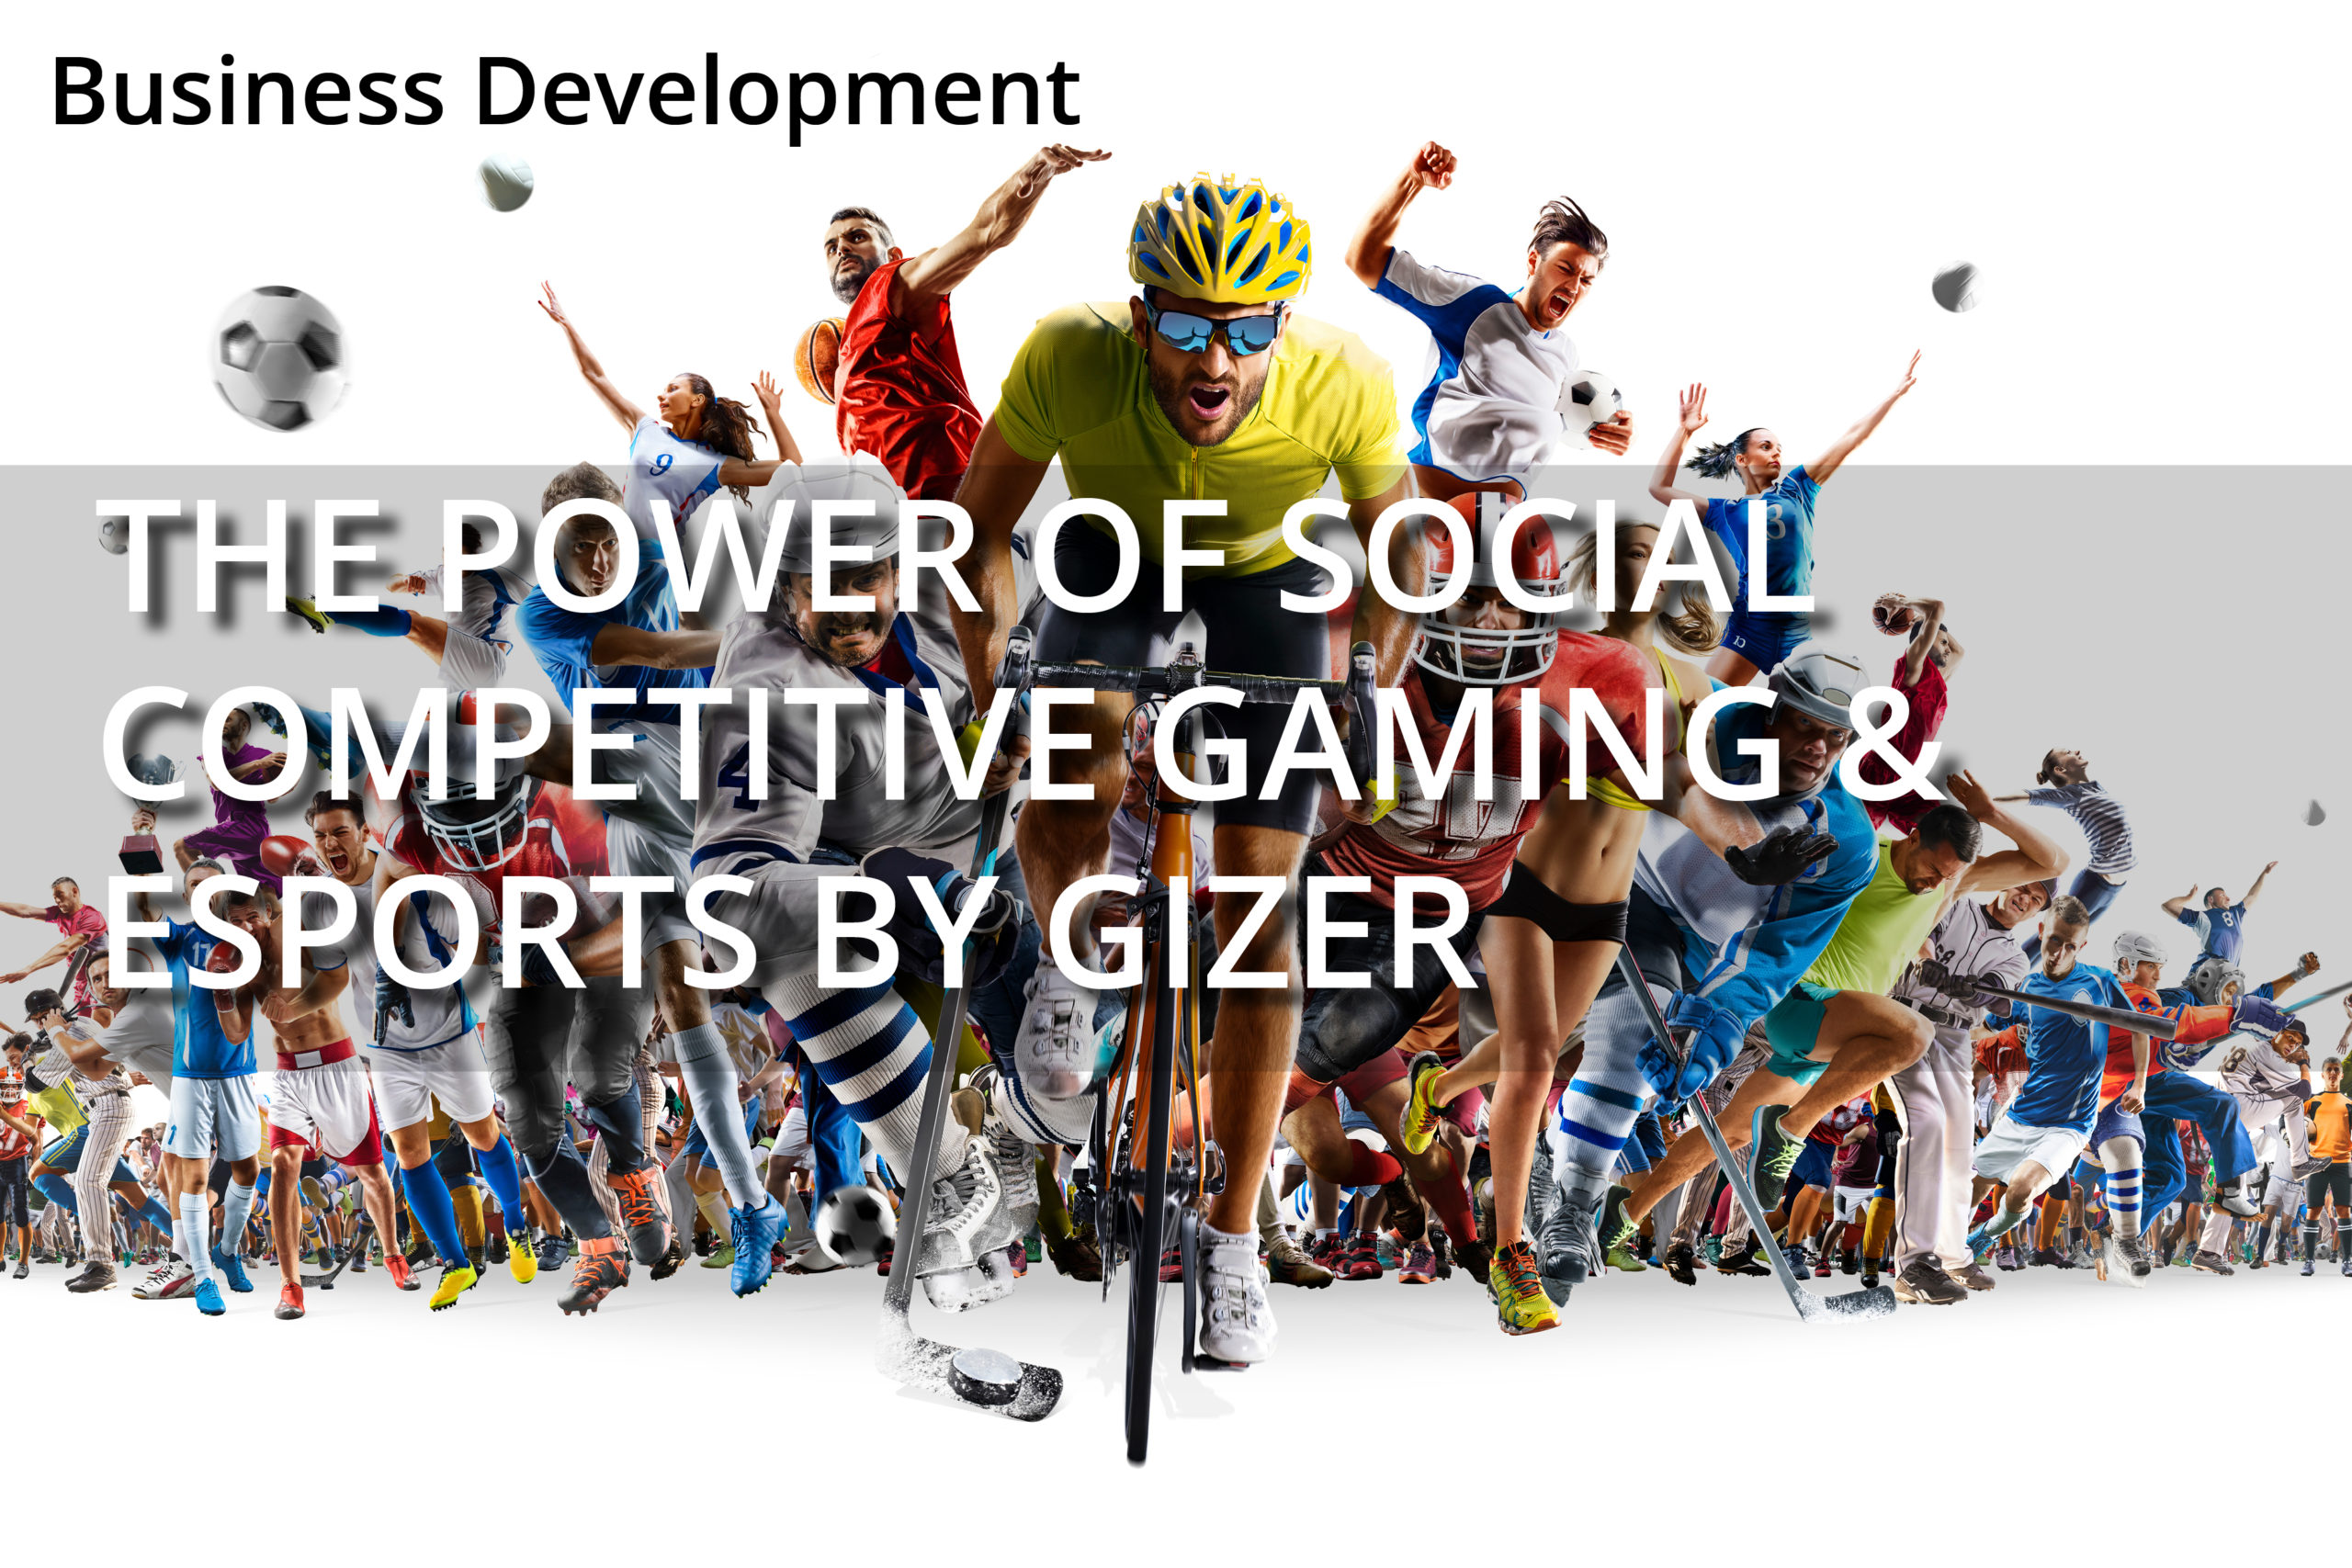 The Power of Social Competitive Gaming & Esports by GIZER